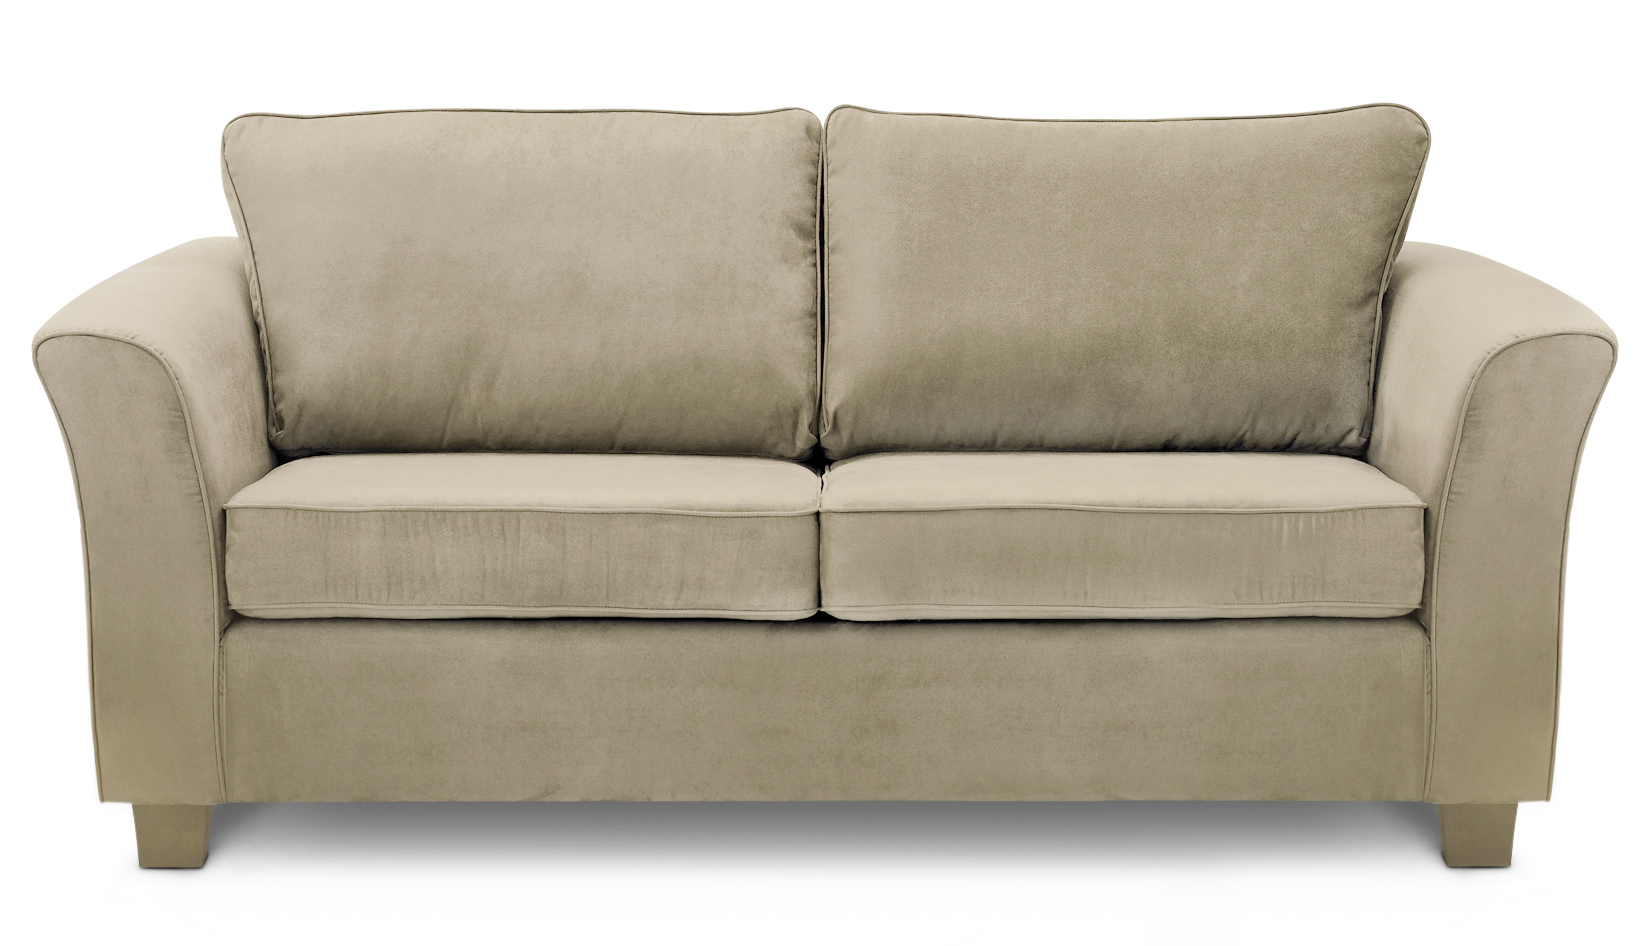 Sofa Set Discount Sale In Hyderabad Sofas On Sale Ikea Couch And Sofa Ideas Interior Design